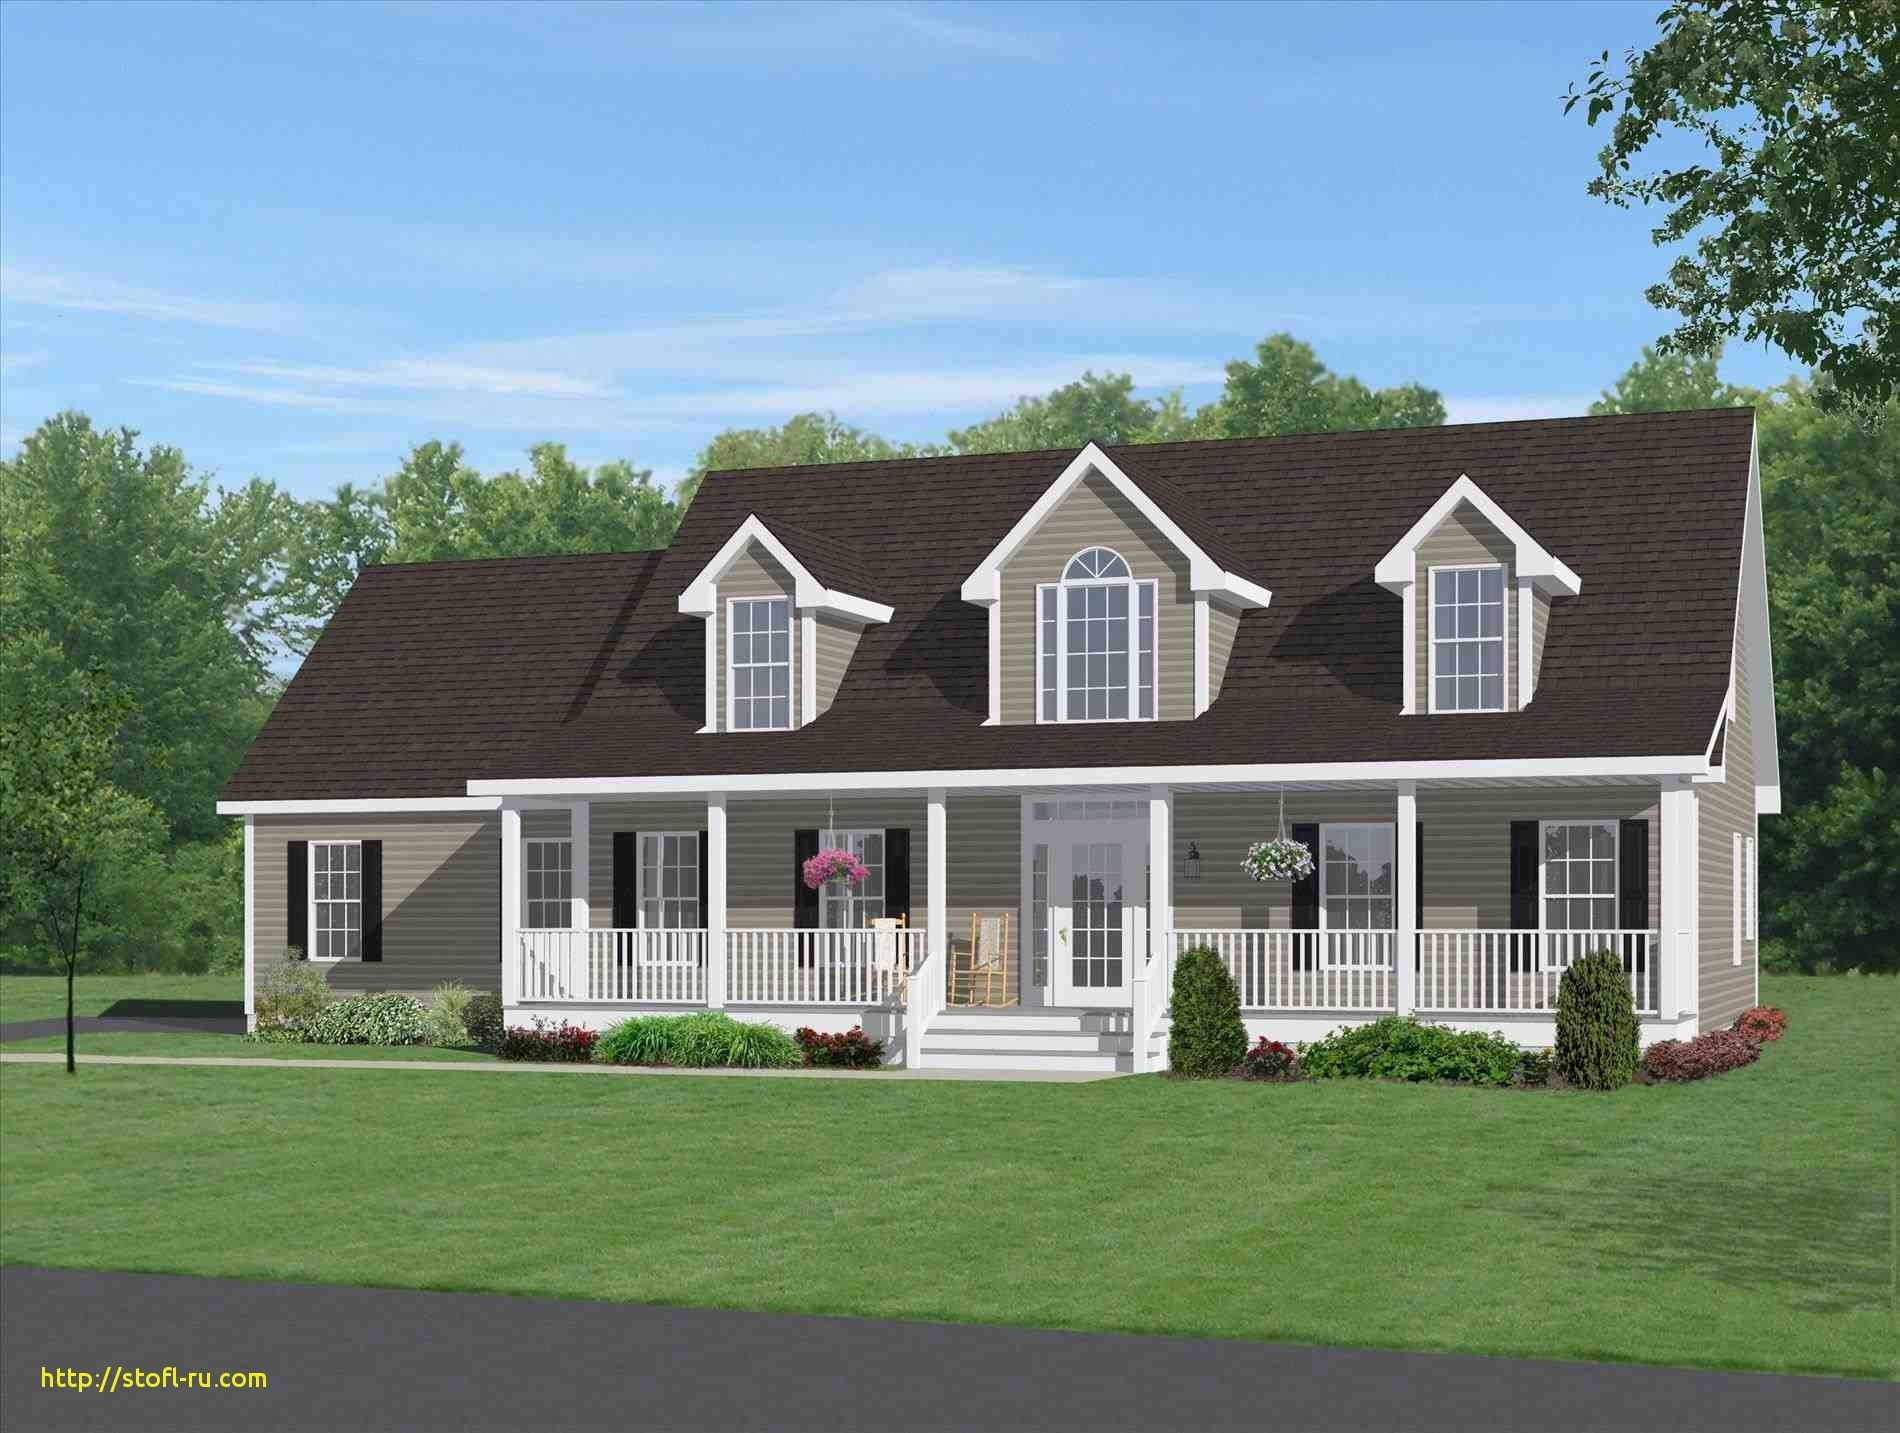 Cape Cod House Plans With Shed Dormers  Modern Style